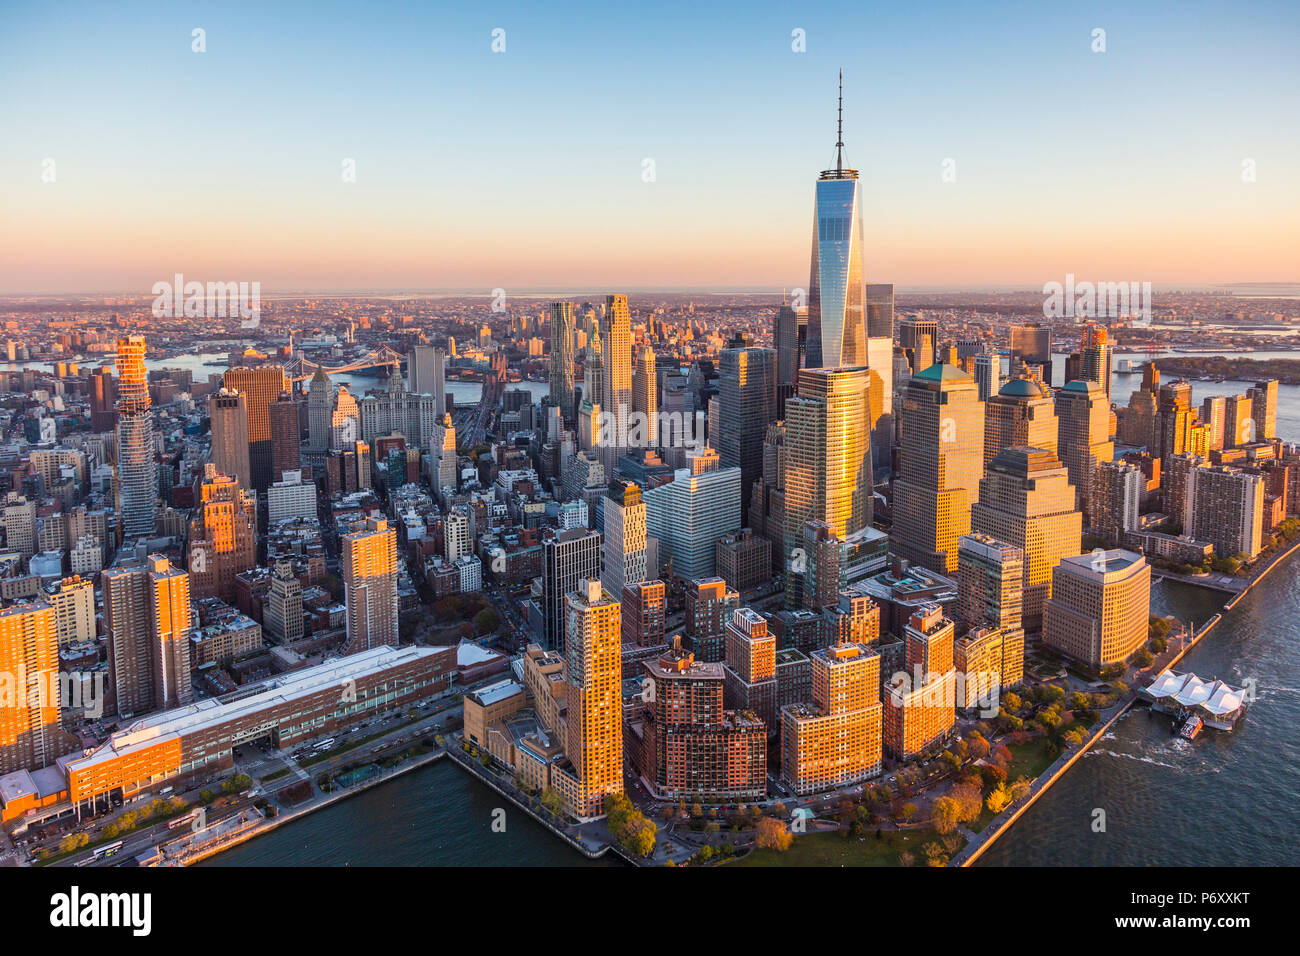 Downtown Manhattan, New York City, USA - Stock Image